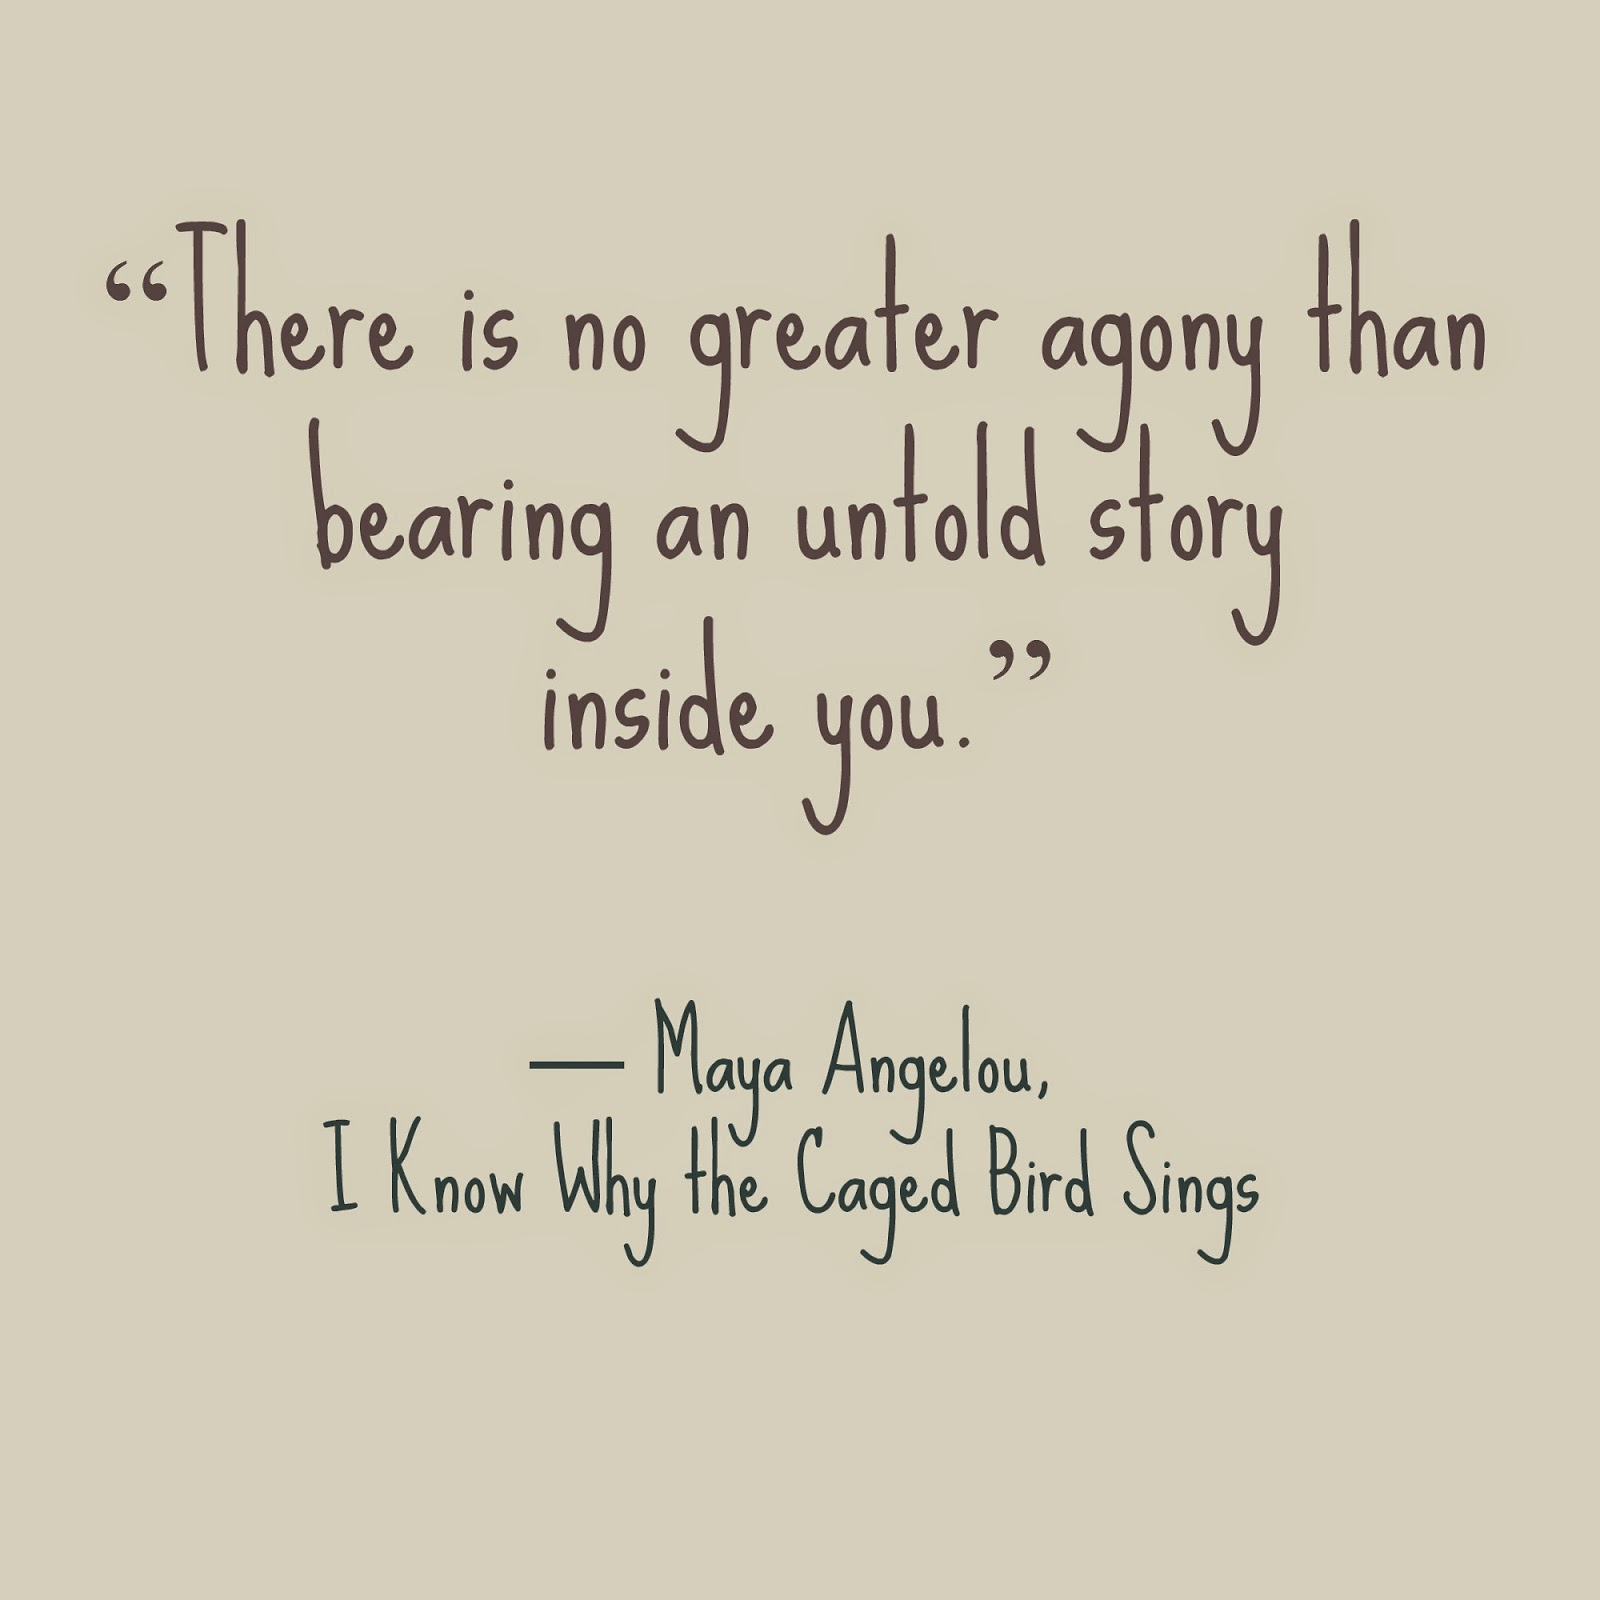 Quotes About Writing Being Therapy (16 Quotes